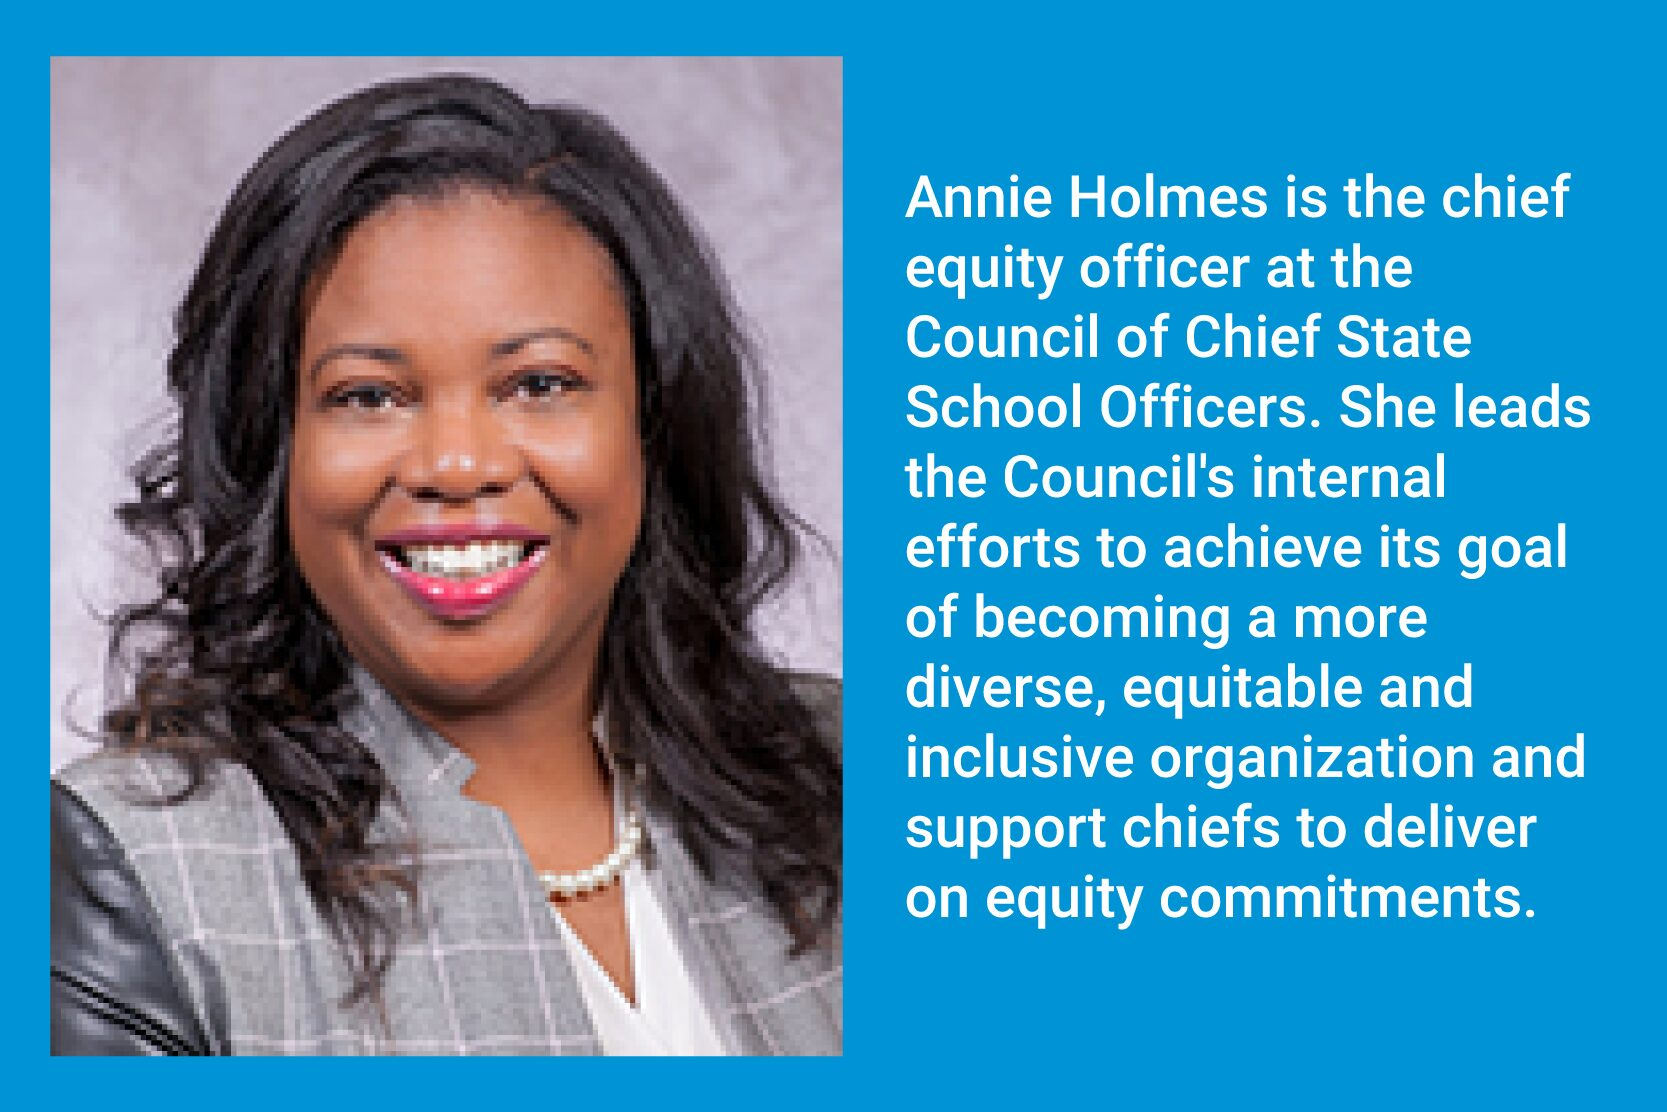 Annie Holmes: Equity in Education is an Attainable Goal